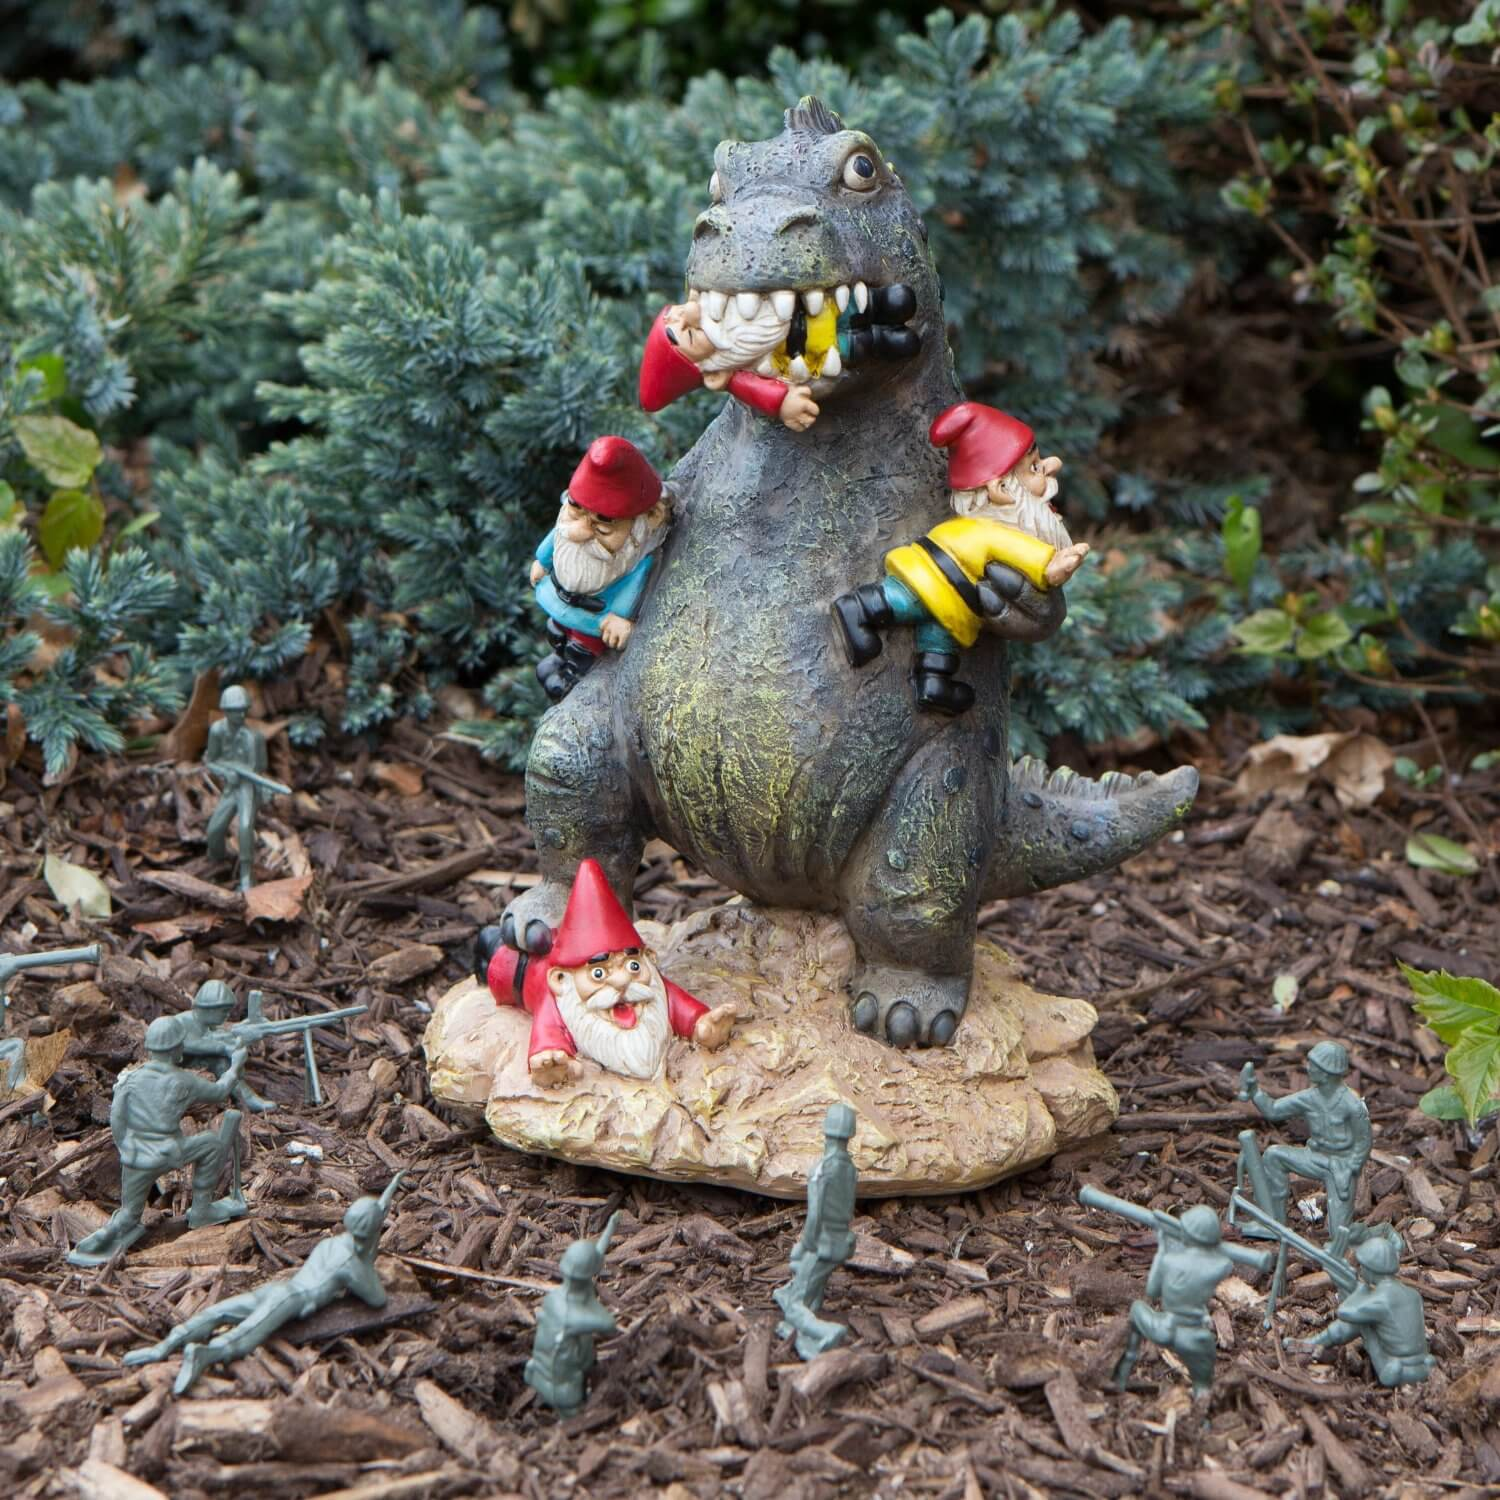 Many people like garden gnomes. Share your thoughts with this sculpture of a dinosaur terrorizing a flock of gnomes. This fun twist on the garden gnome is sure to garner attention.